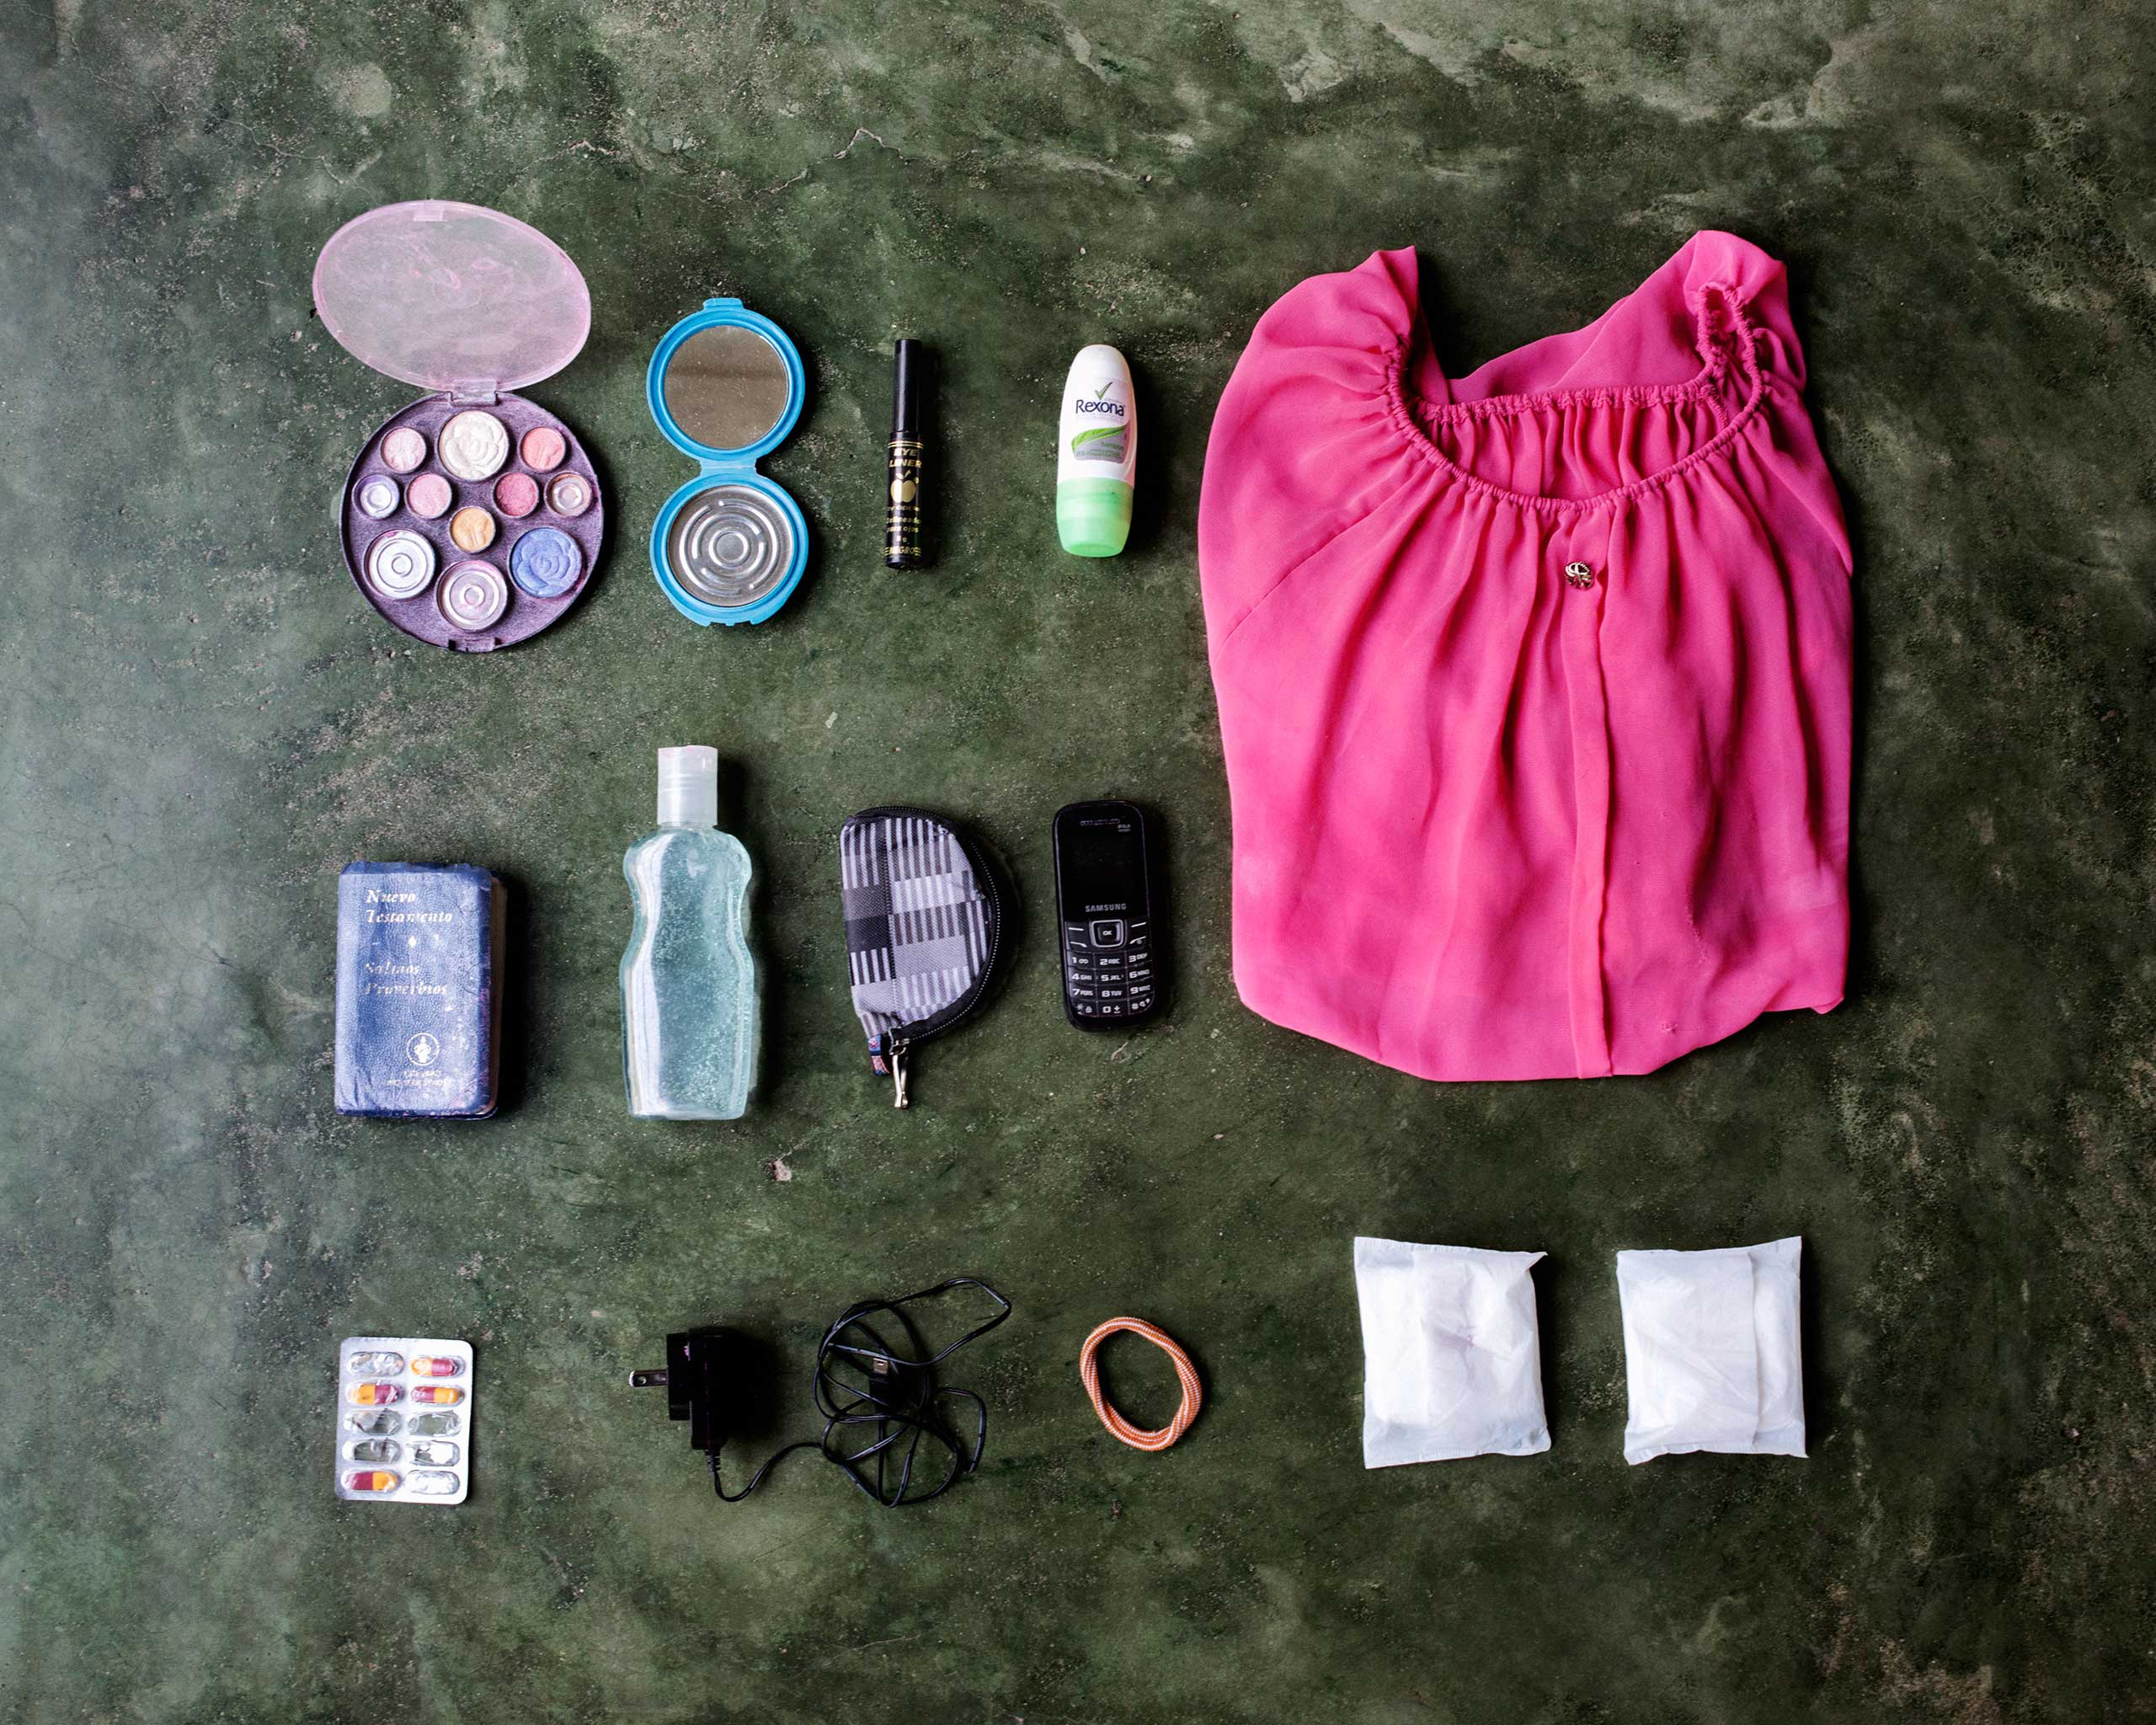 Delmis Helgar, 32, from Honduras. She is in a hurry to reach Houston where her little daughter is living with relatives, after her ex-husband was recently deported. In her bag was a make-up set, hand mirror, lip gloss, deodorant, a shirt, a small bible, face gel, a wallet, a cell phone, pills, a battery charger, hair band and two pantyliners.